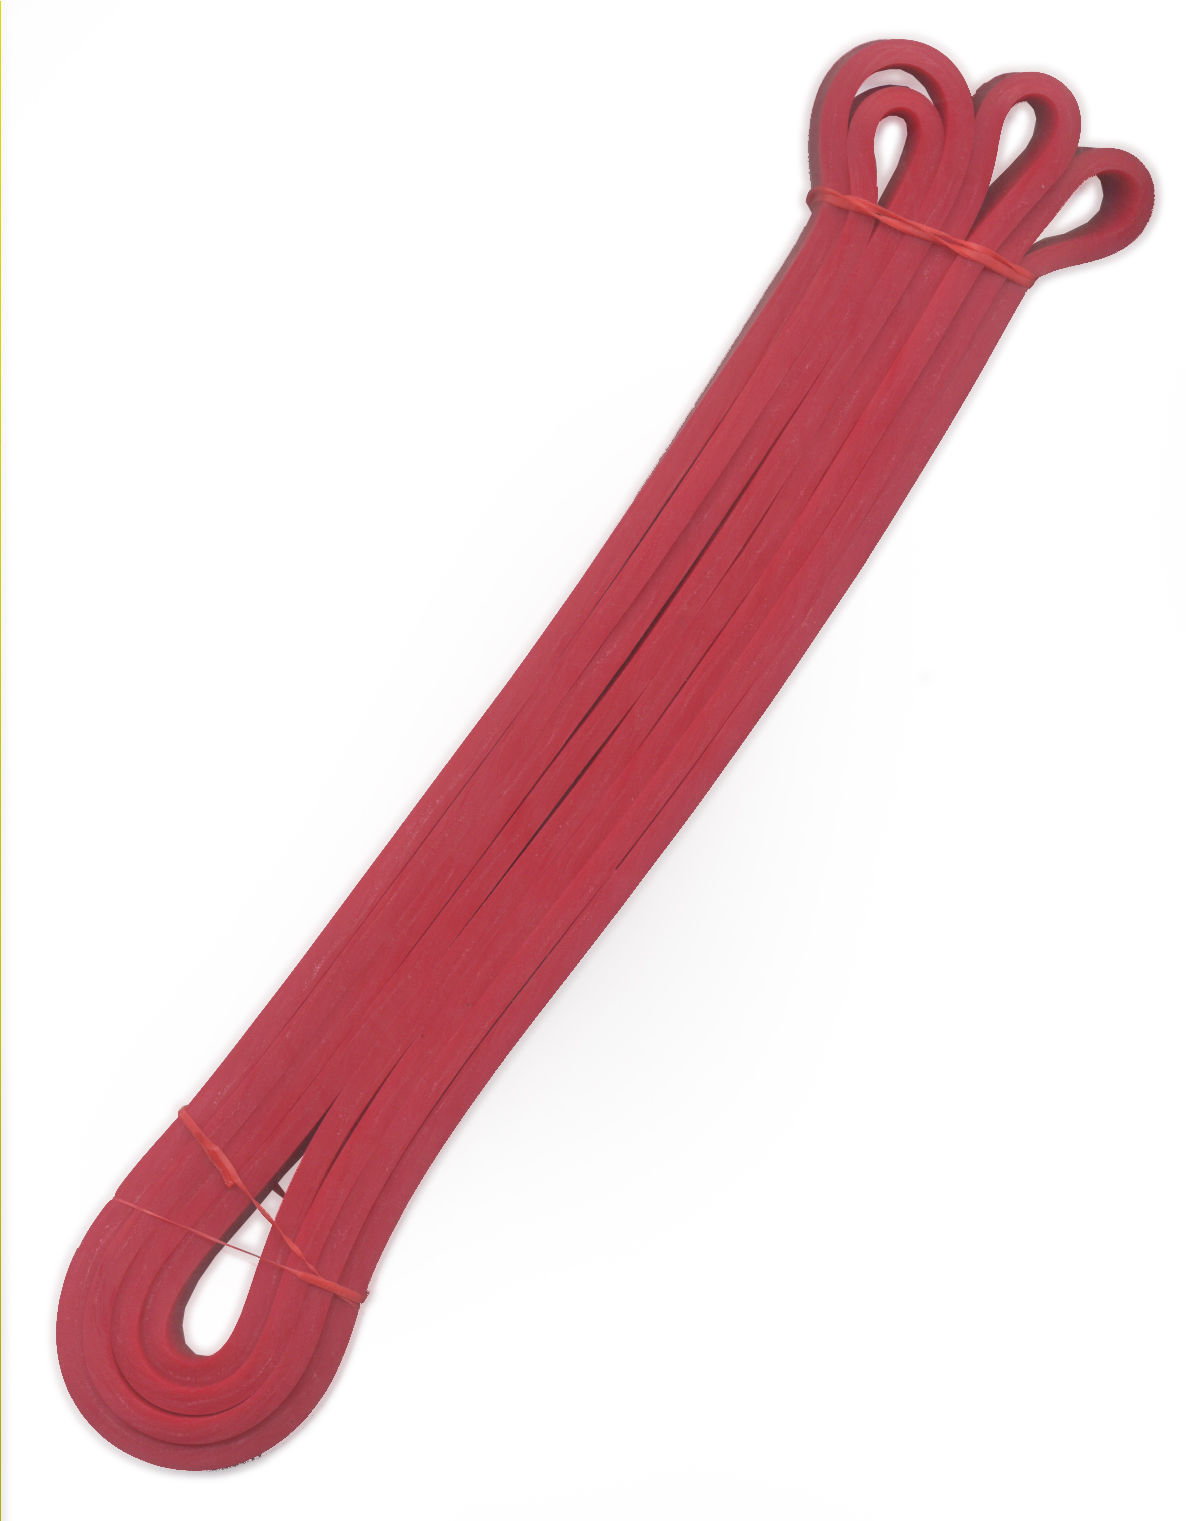 "41"" Power Lifting Band, Red, 26 pounds at full stretch"